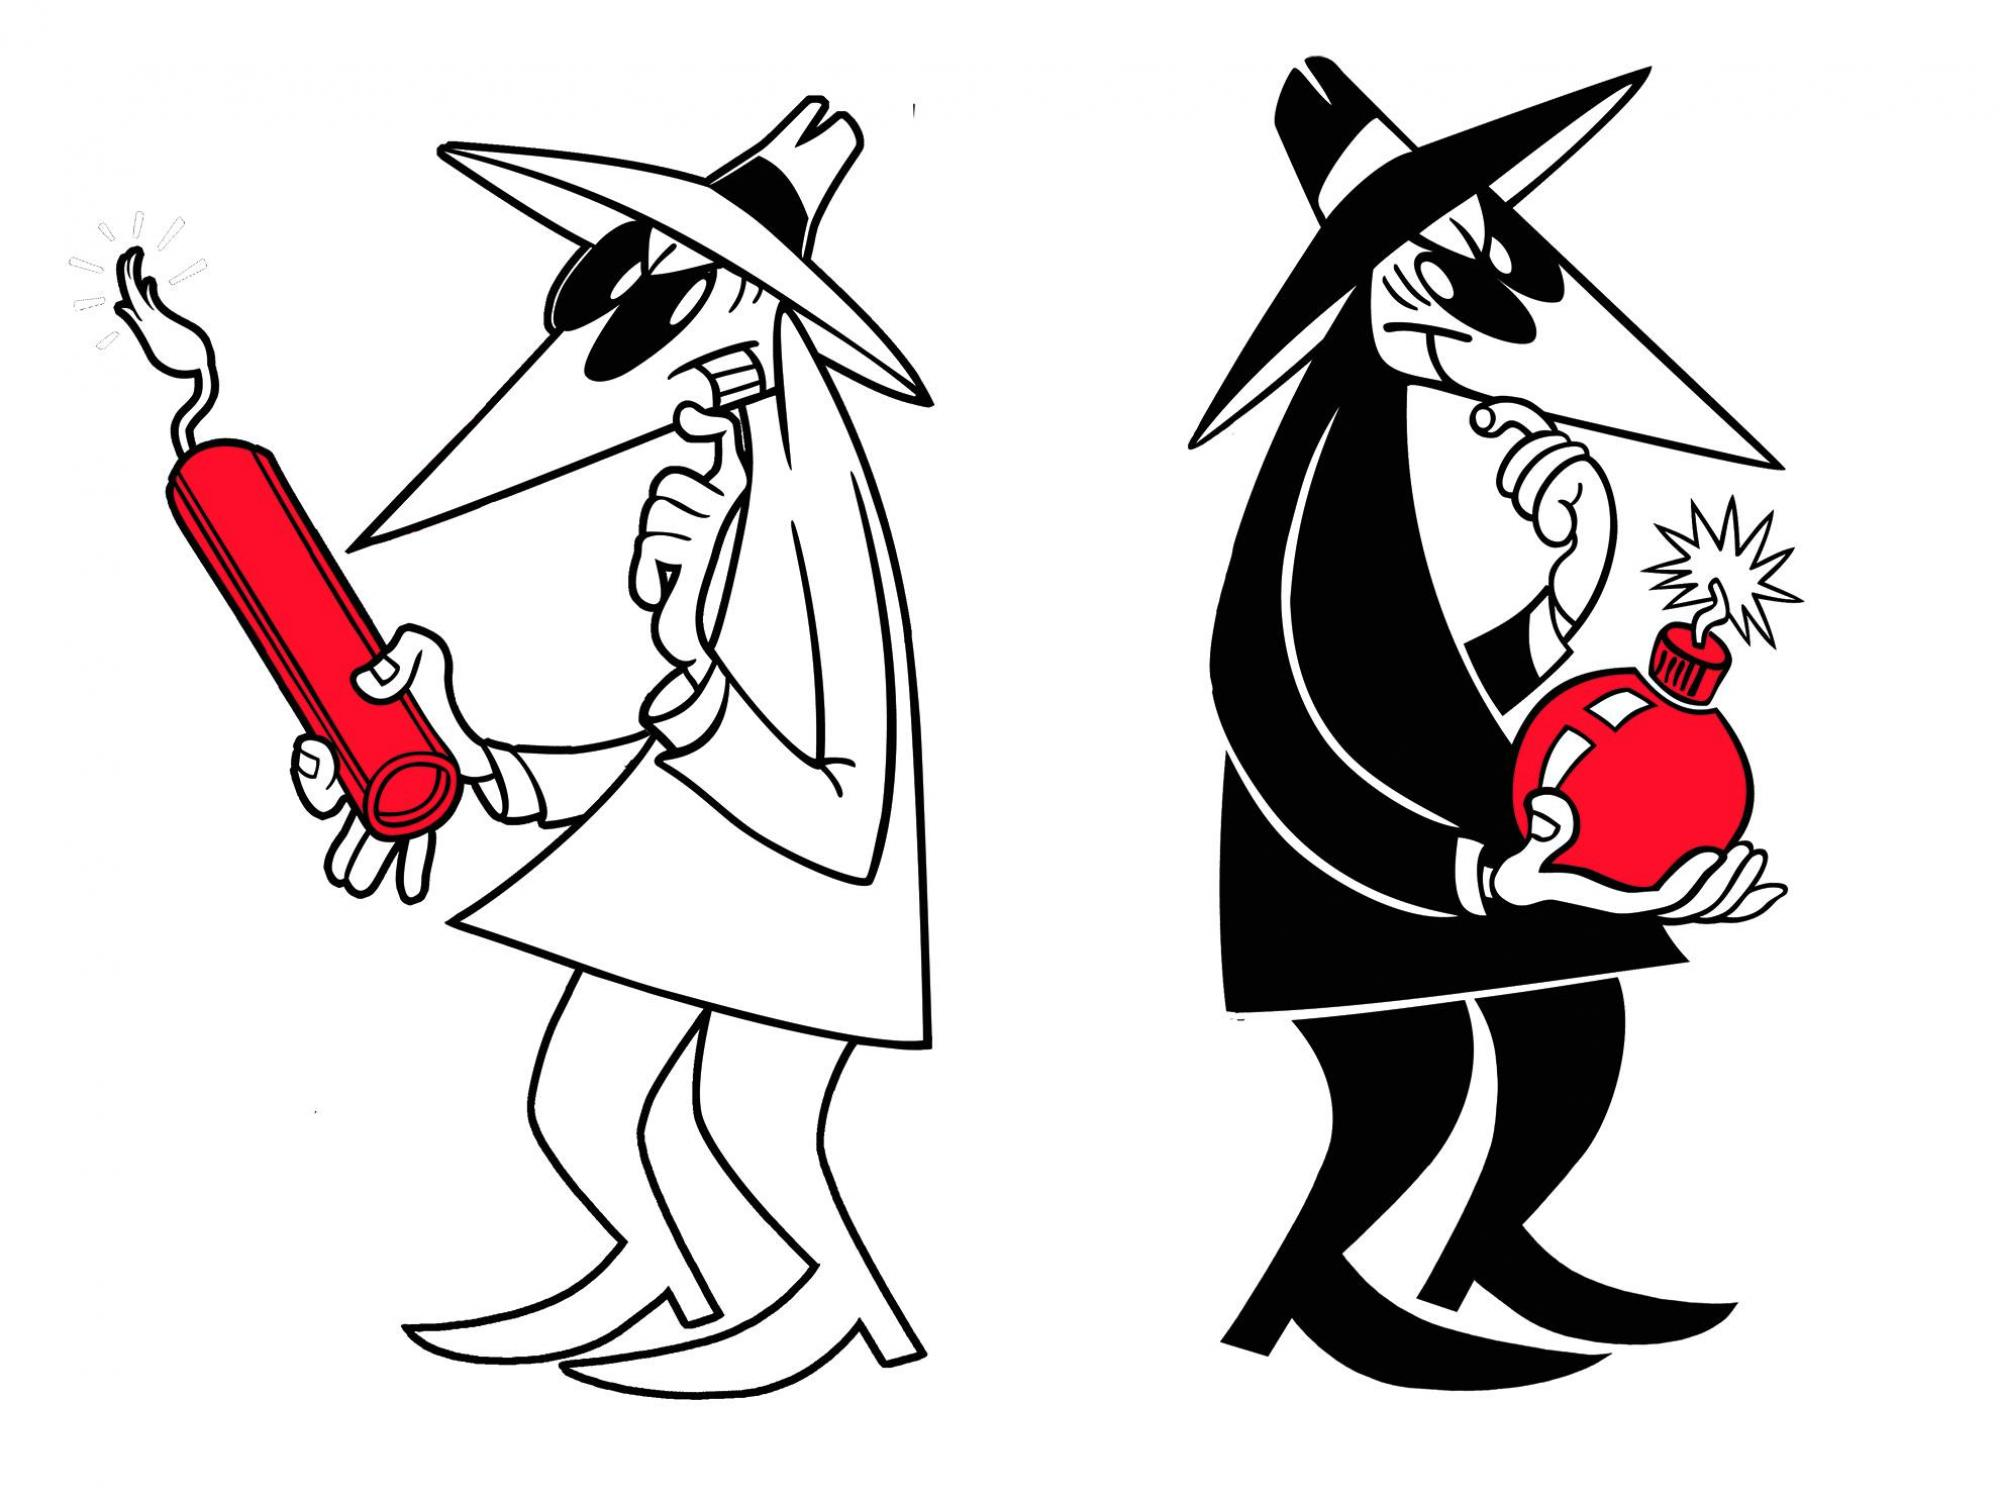 """Reminiscent of the characters in the popular comic strip """"Spy vs. Spy,"""" who spend all their time seeking ways of destroying each another instead of doing any actual spying, a few competing selfish individuals can benefit the greater community in evolution"""